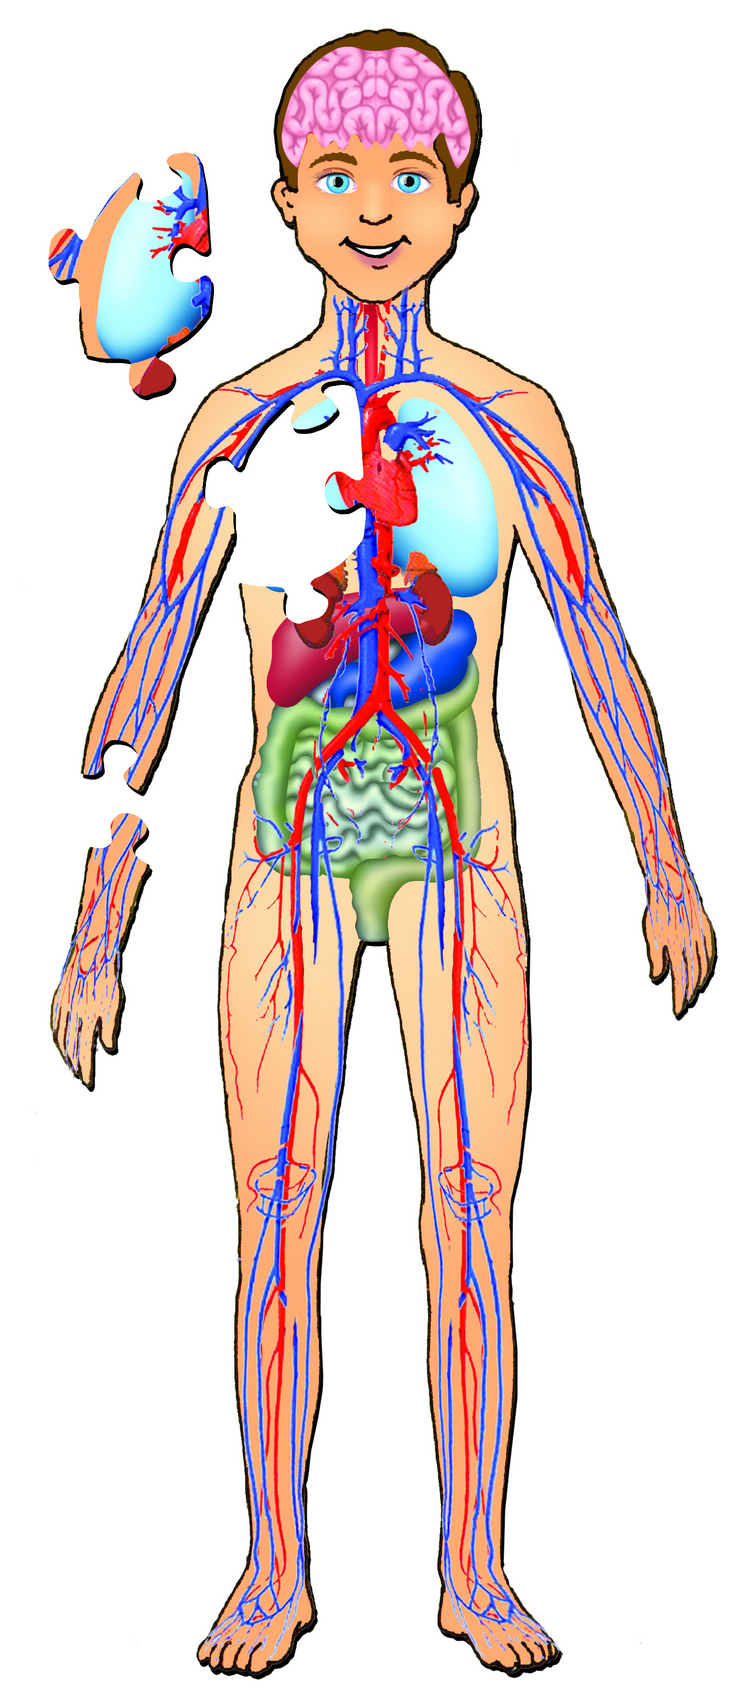 Human Body with OrgansHuman Body Diagram For Kids